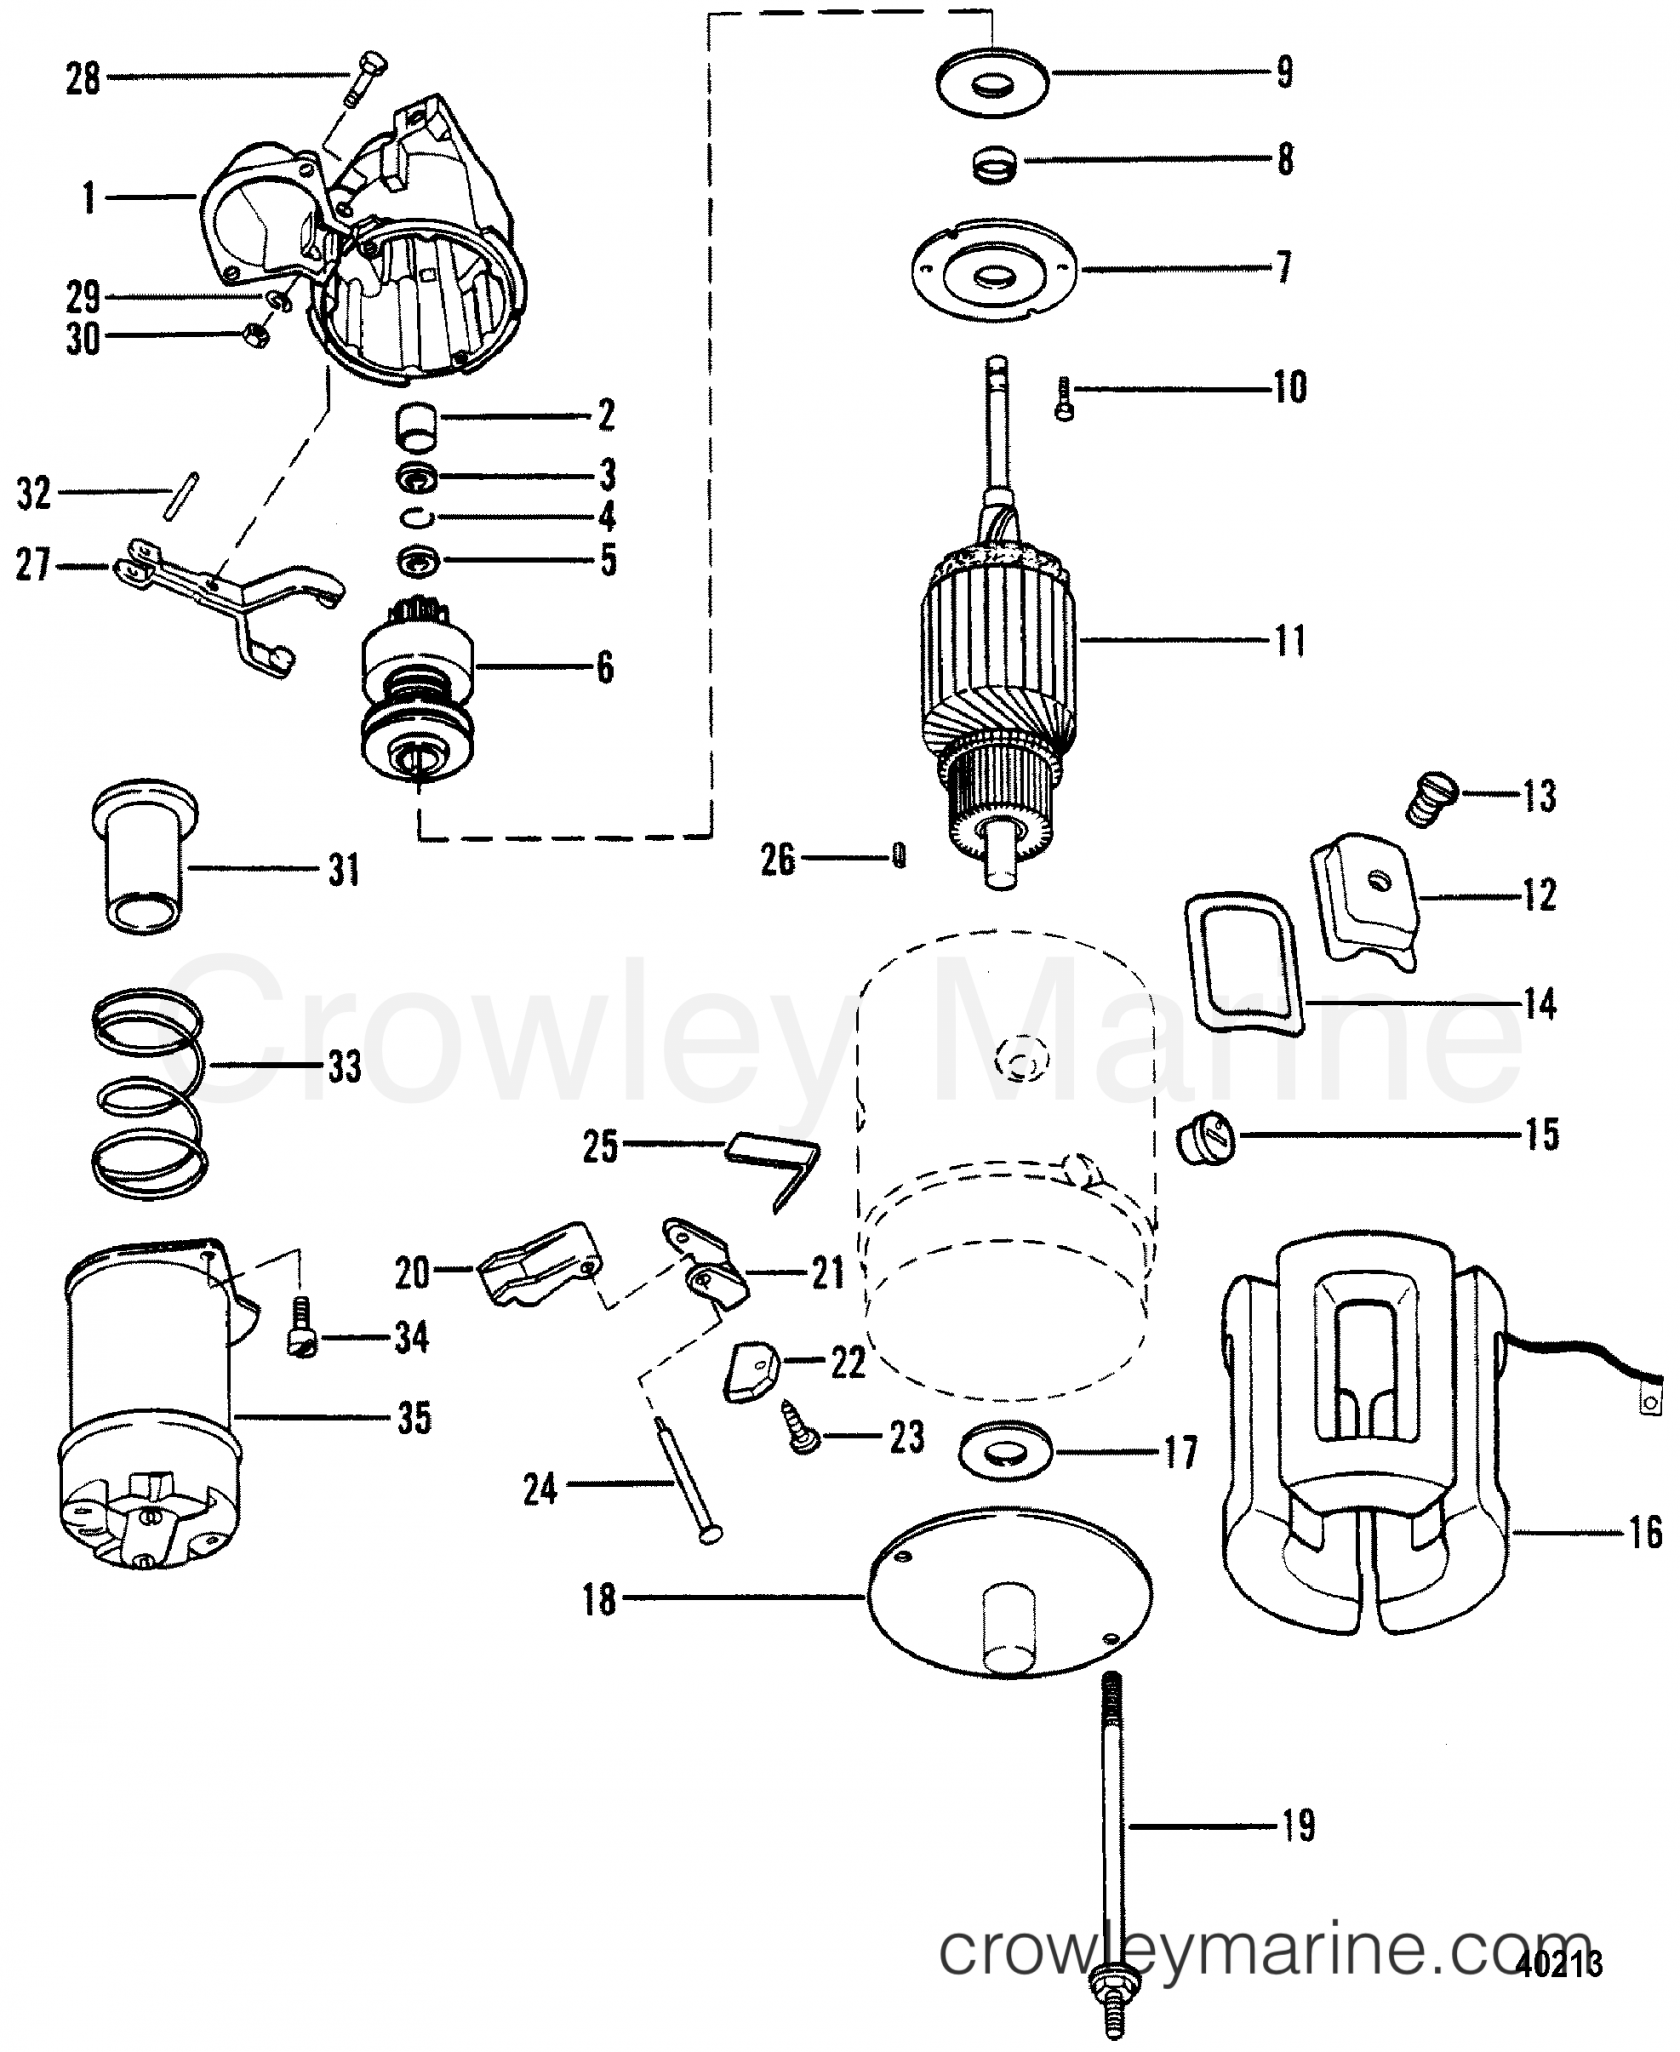 Star Delta Starter Wiring Diagram Please